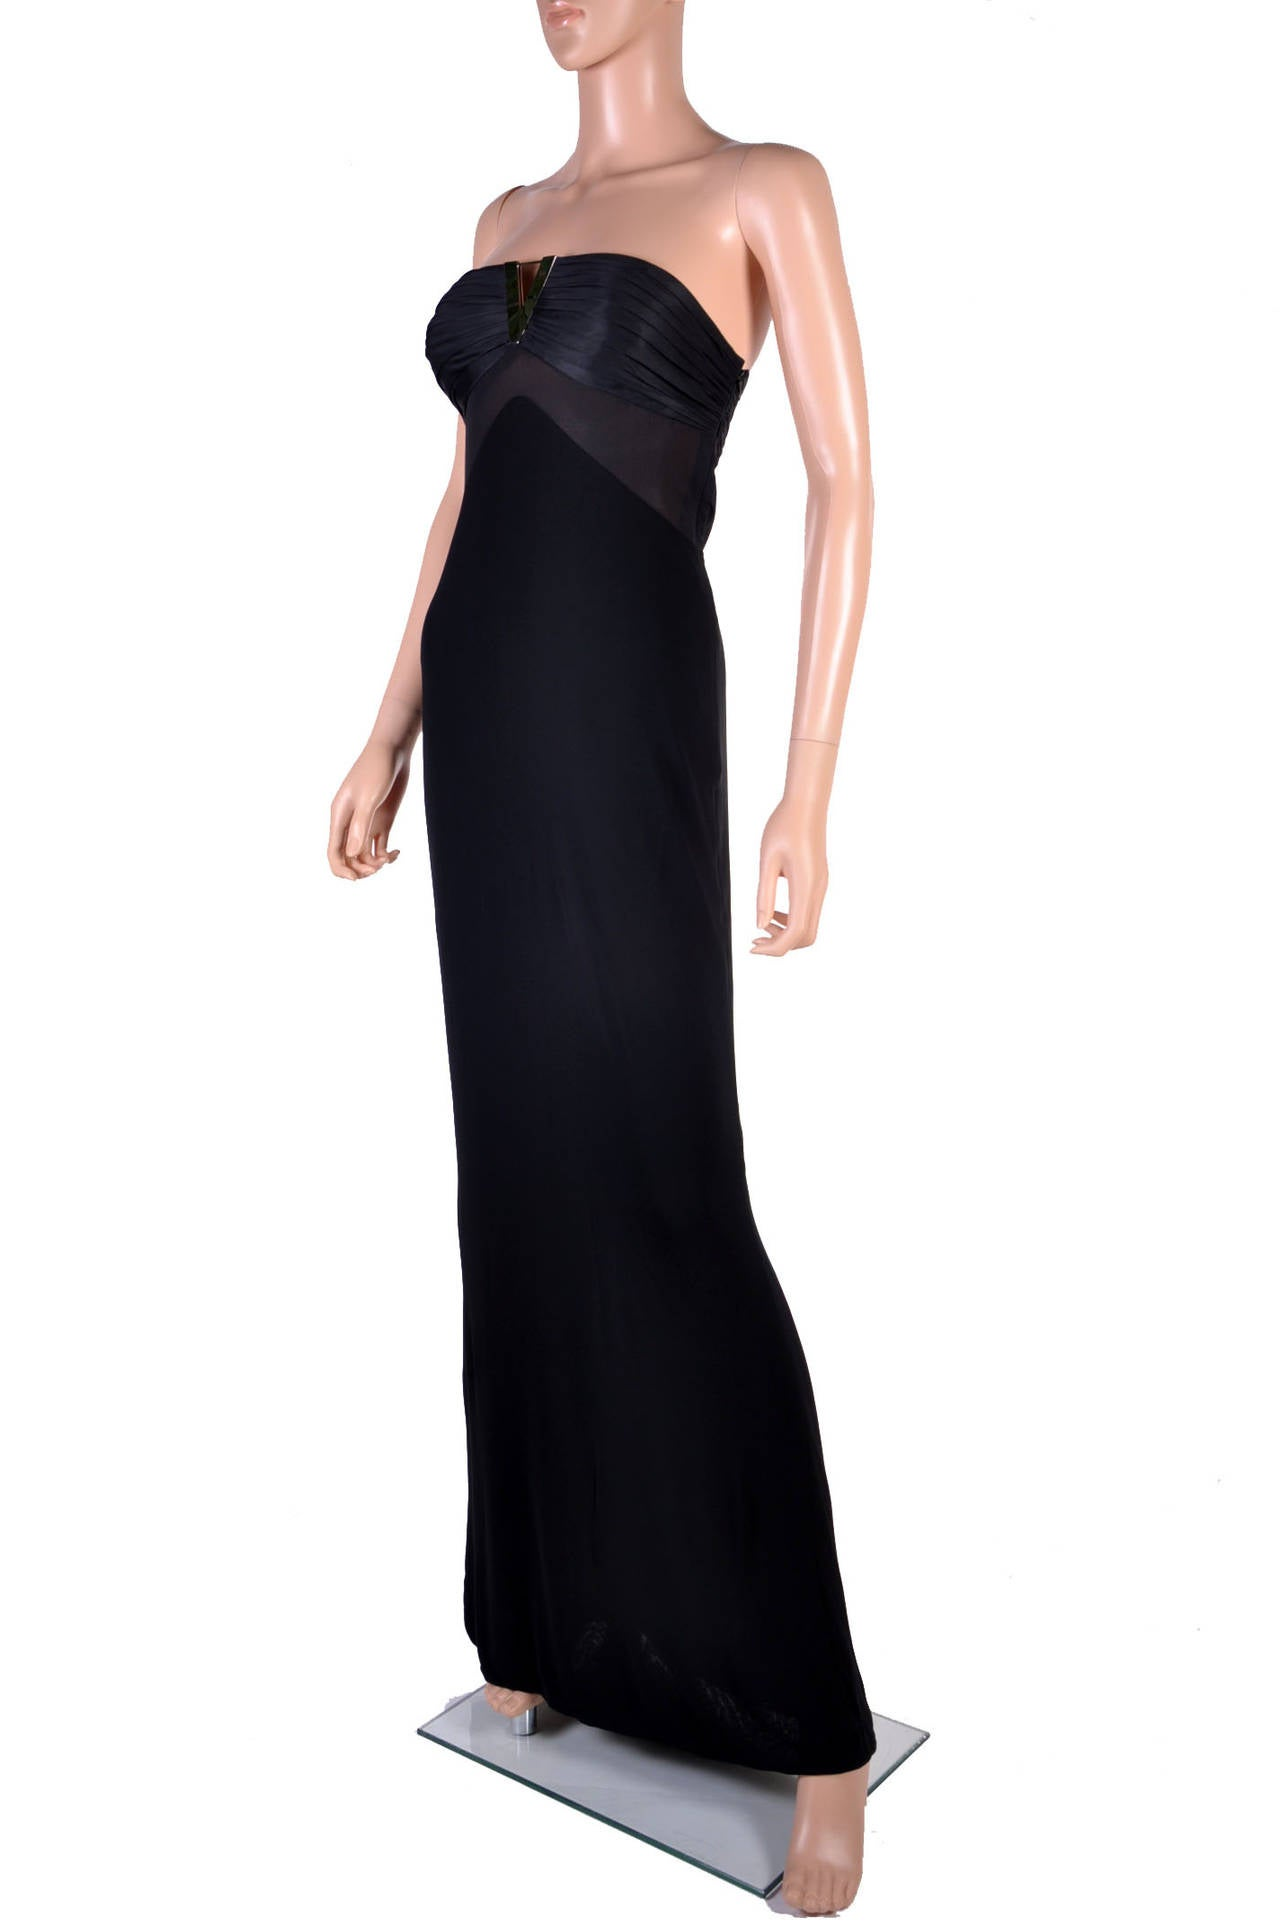 New VERSACE BLACK STRAPLESS DRESS GOWN For Sale at 1stdibs